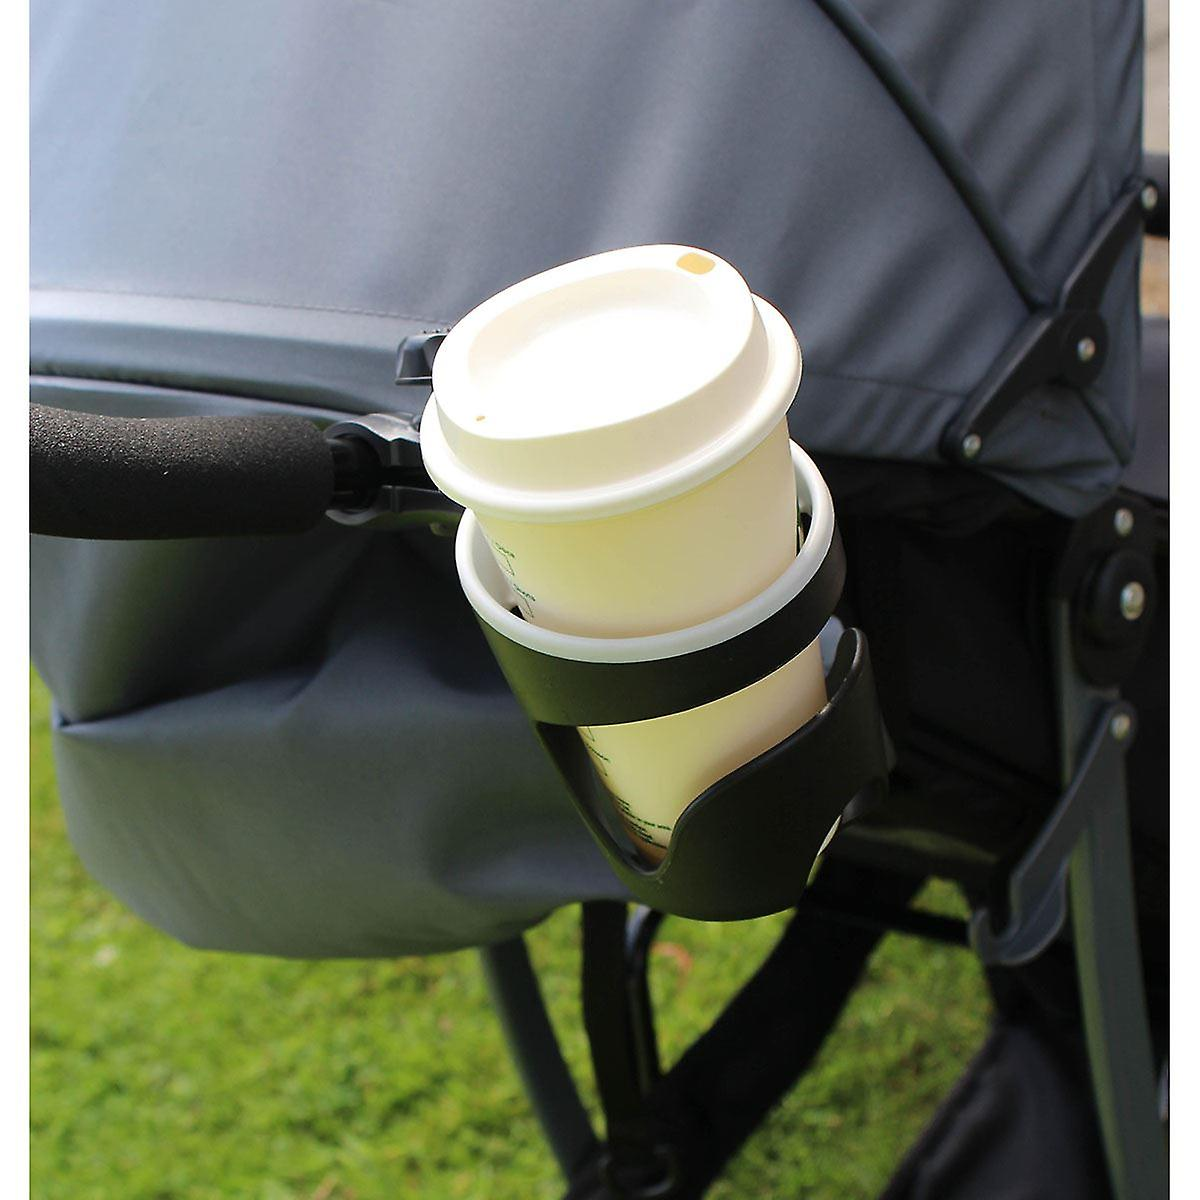 Red Kite Universal Buggy Pushchair Cup Holder